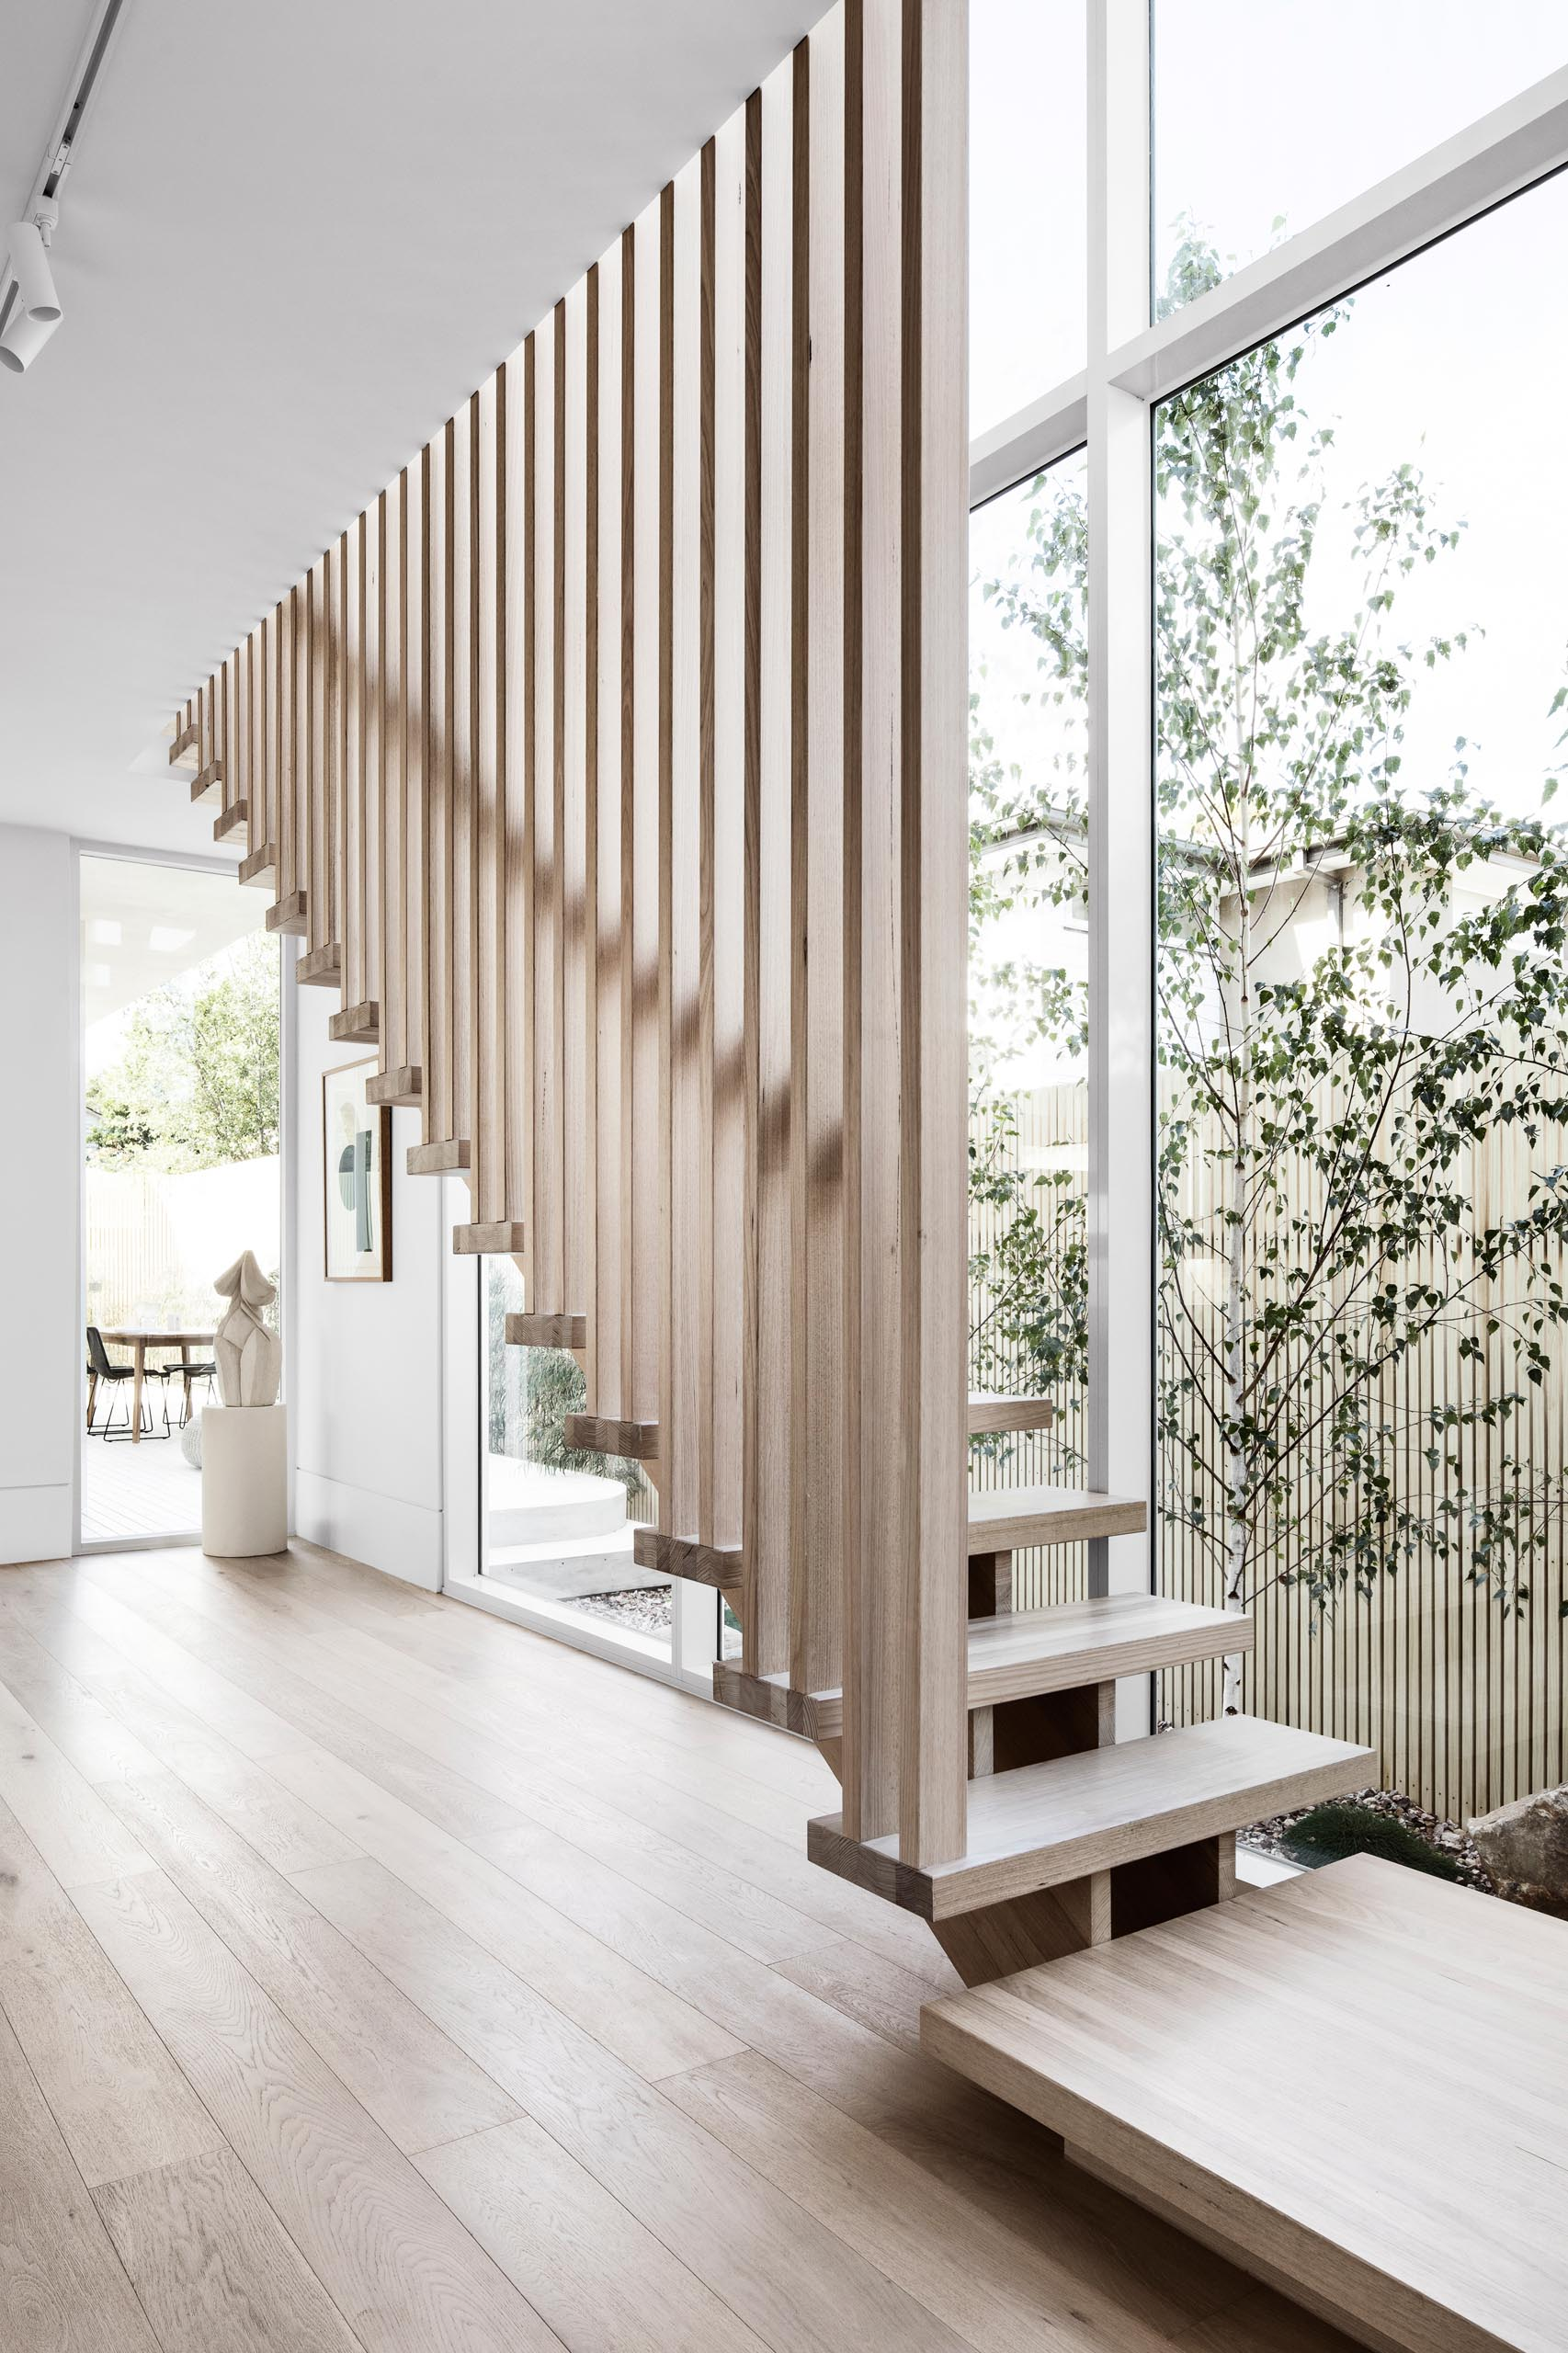 This modern staircase was located beside a wall of windows and has an overall muted, minimalist, light theme that was achieved by using natural Victorian ash timber on the treads and battens.